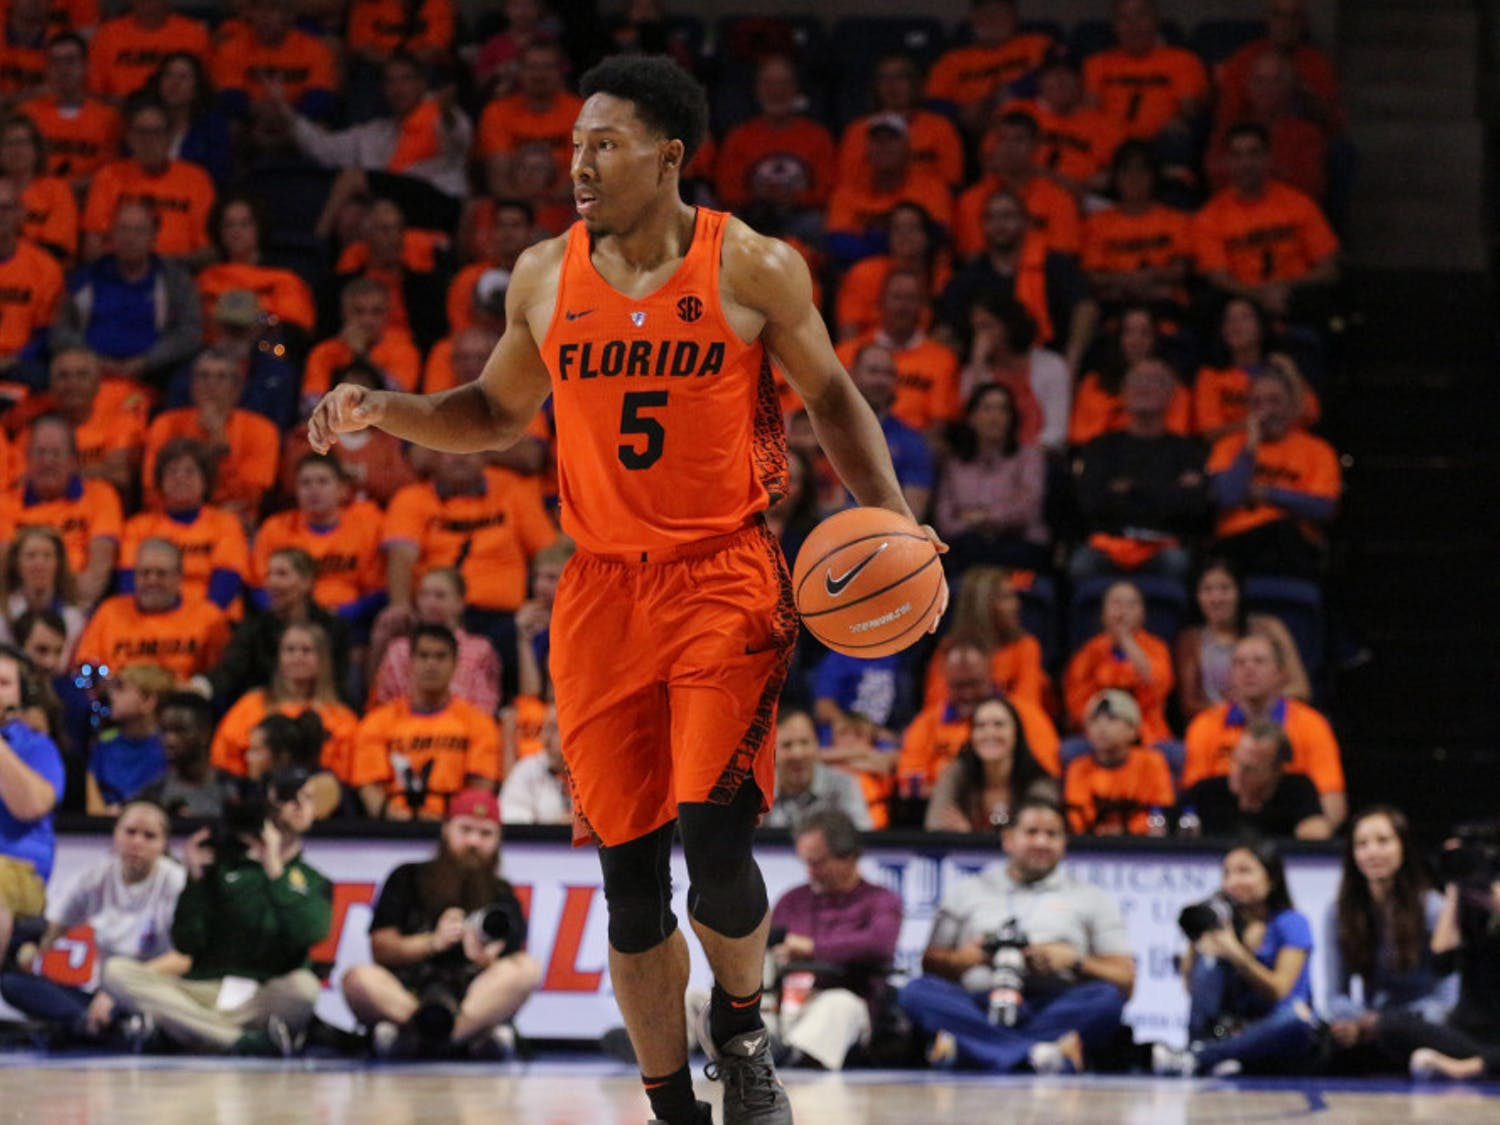 Senior guard KeVaughn Allen was held to zero points in Florida's 81-60 loss to Florida State.